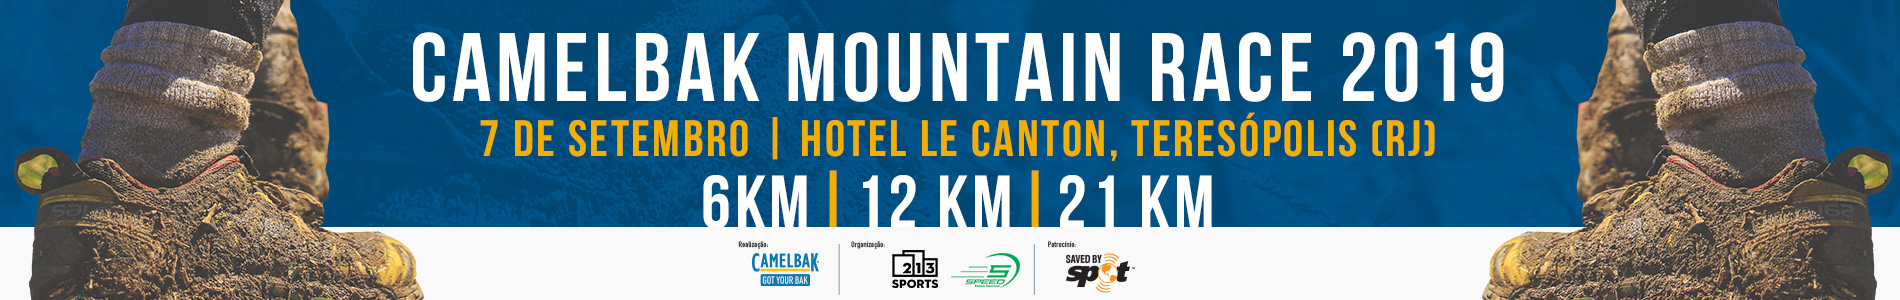 CAMELBAK MOUNTAIN RACE 2019